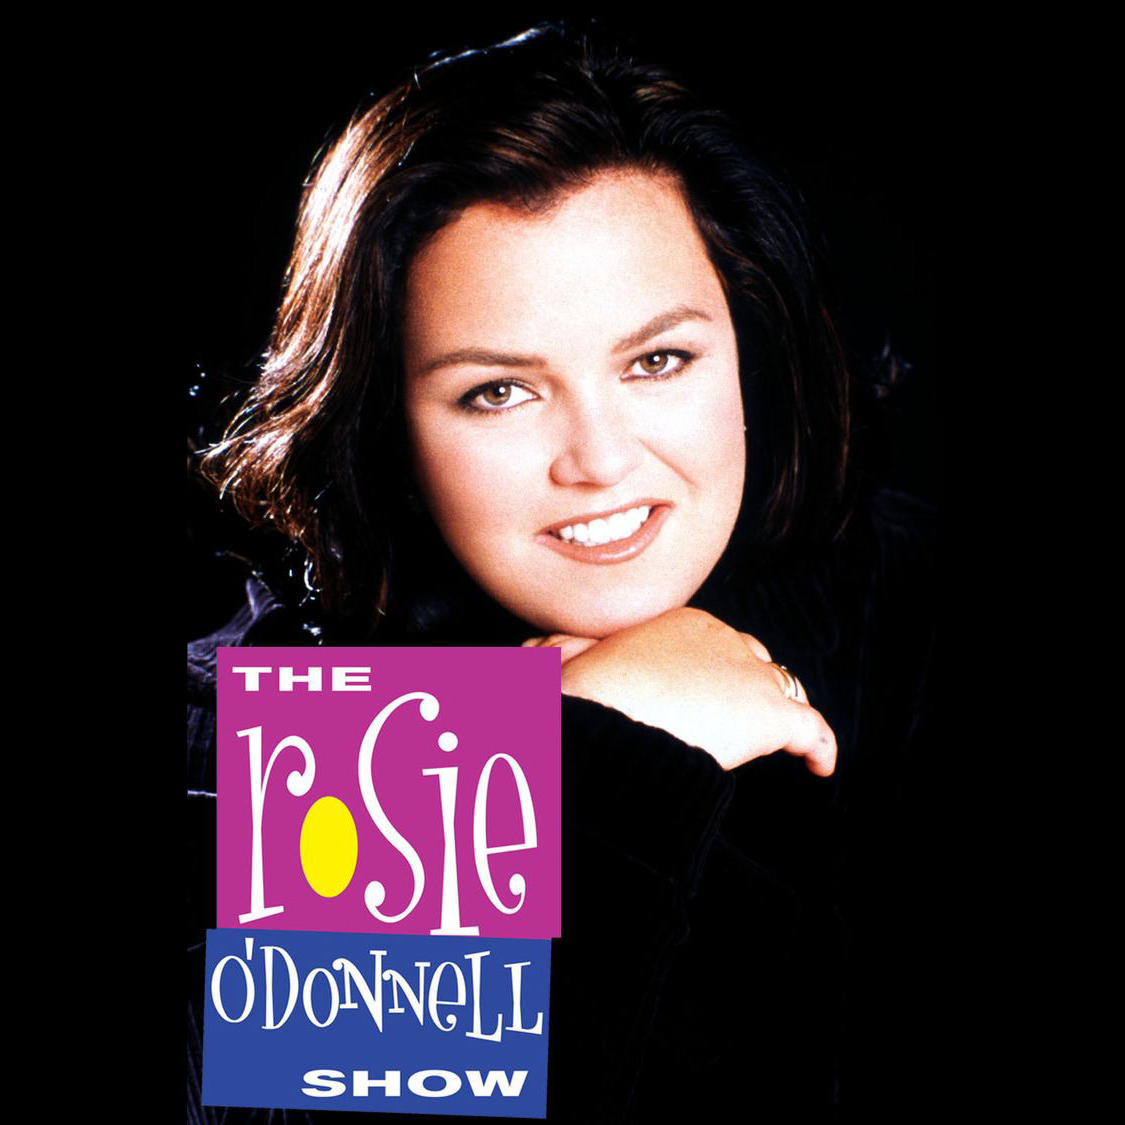 VH1's Save The Music & The Rosie O'Donnell Show: